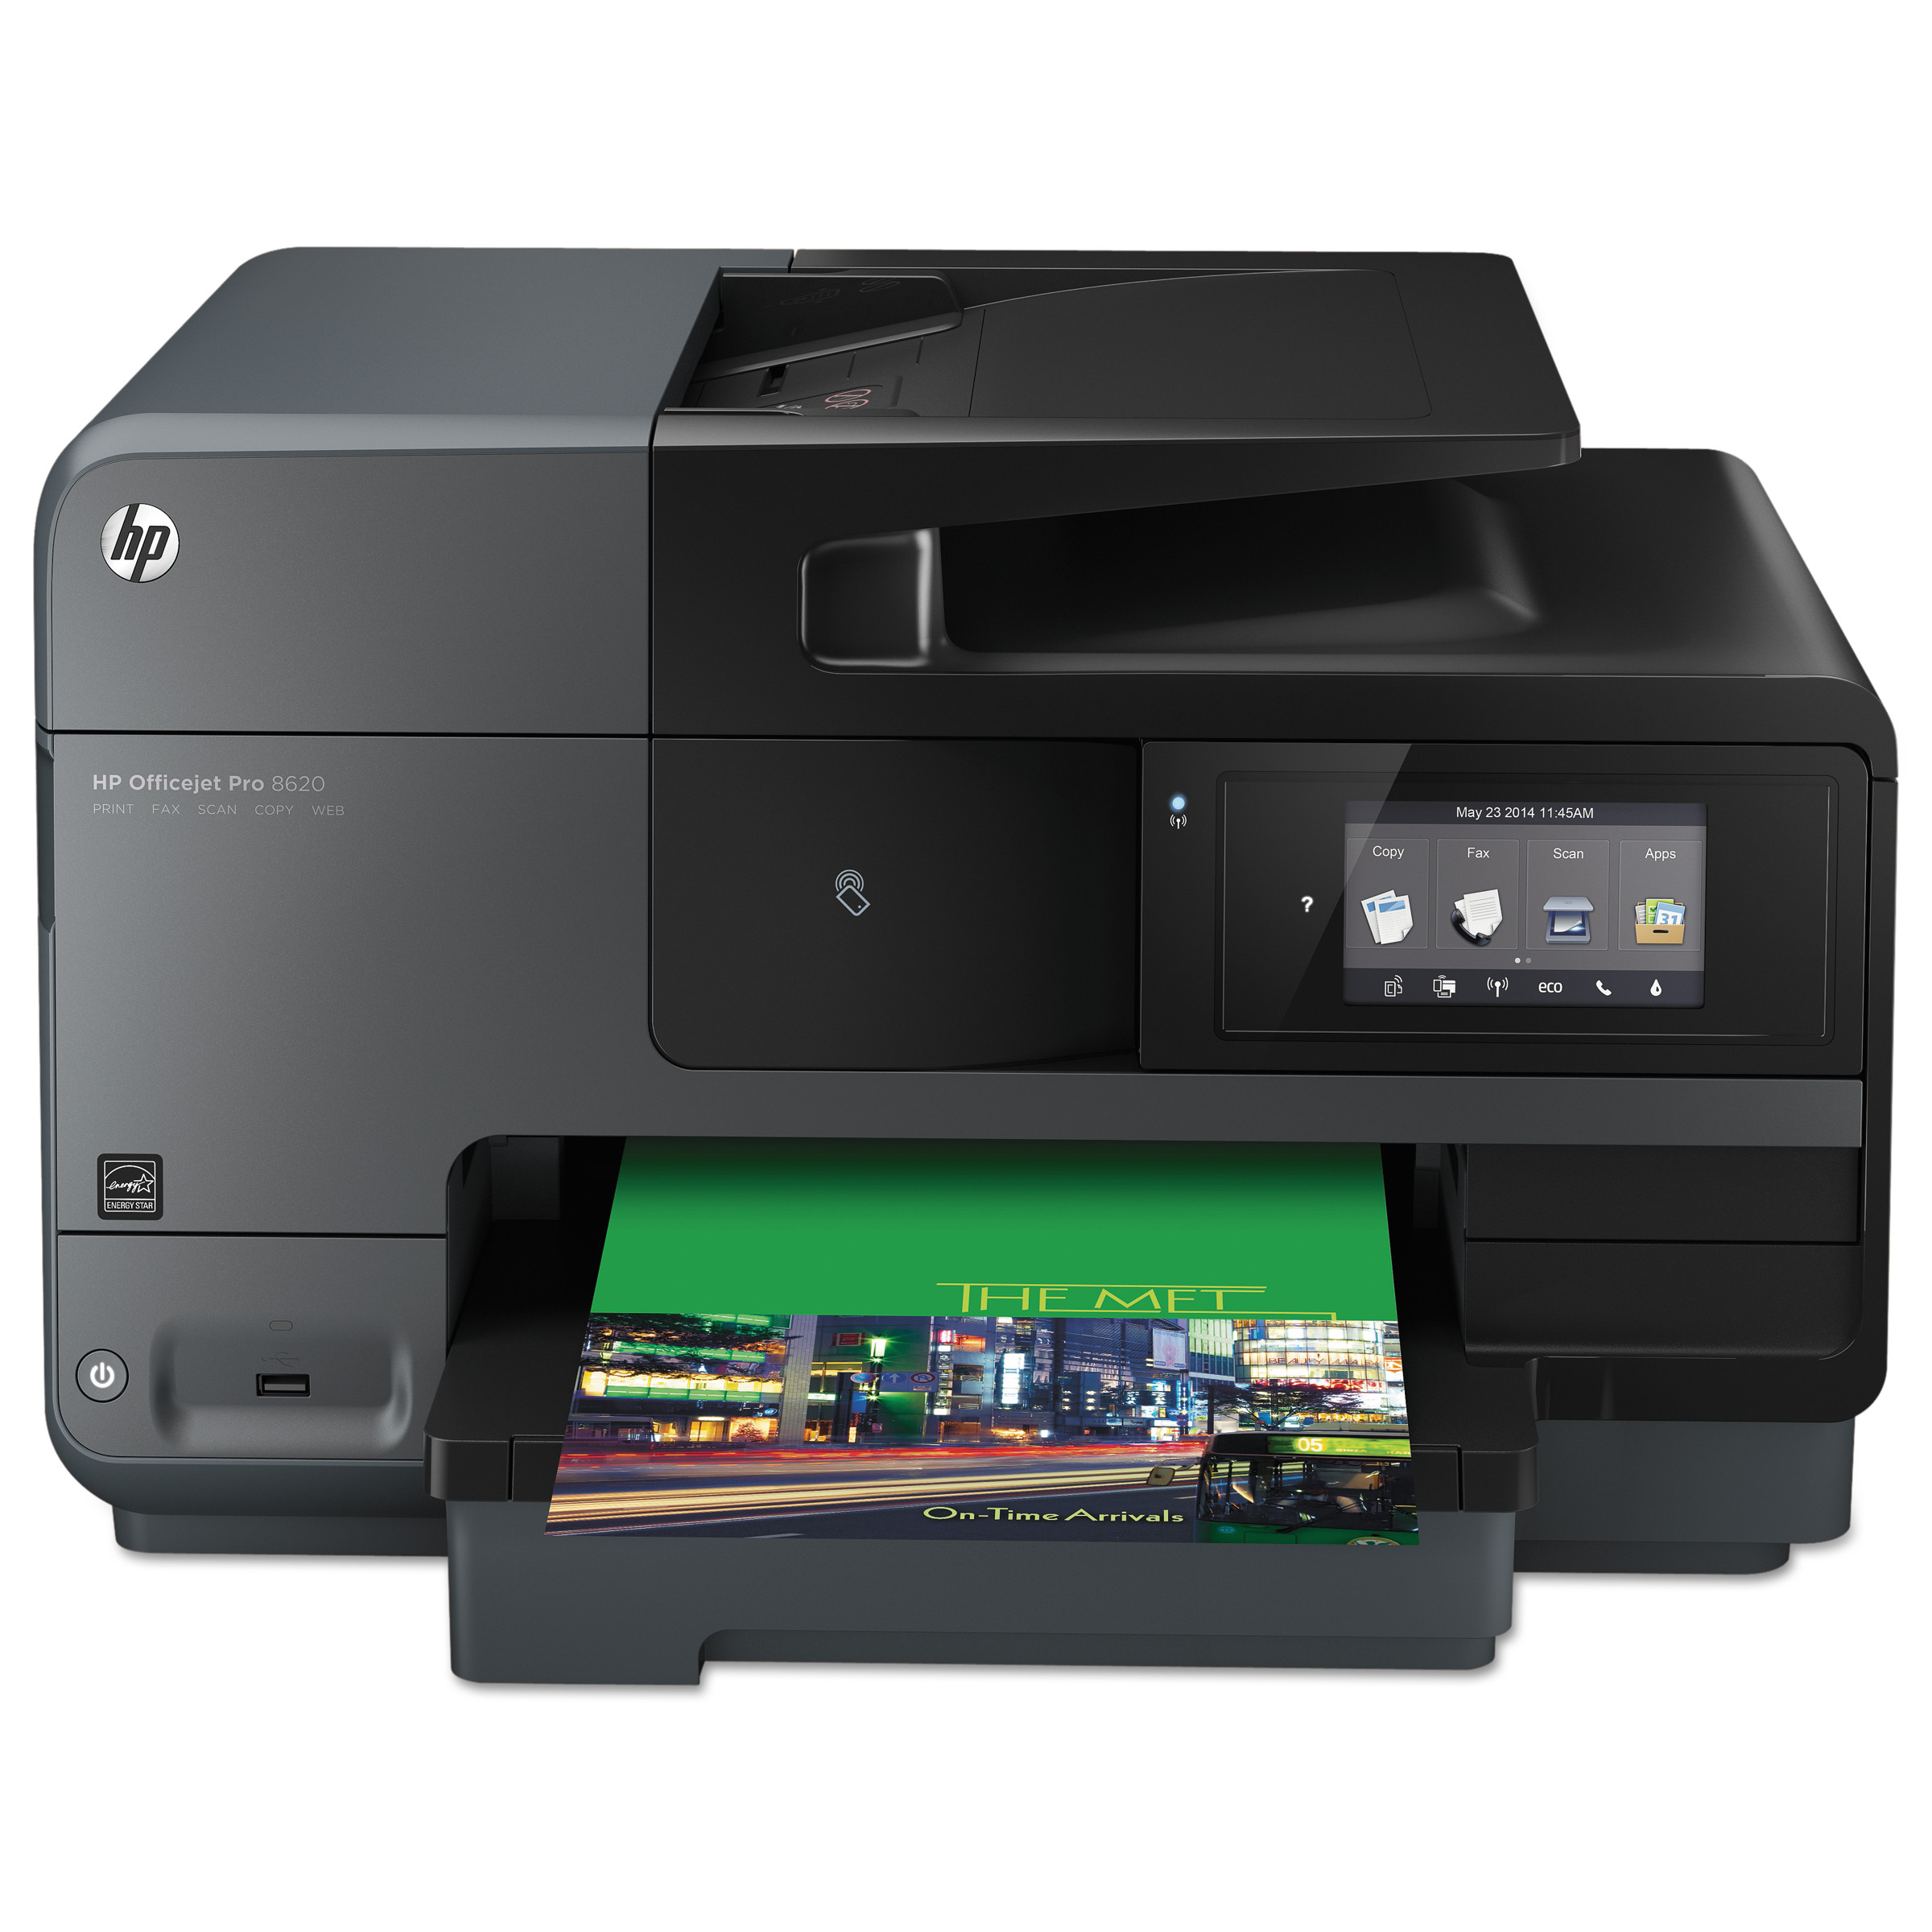 HP Officejet Pro 8620 e-All-in-One Wireless Inkjet Printer, Copy/Fax/Print/Scan